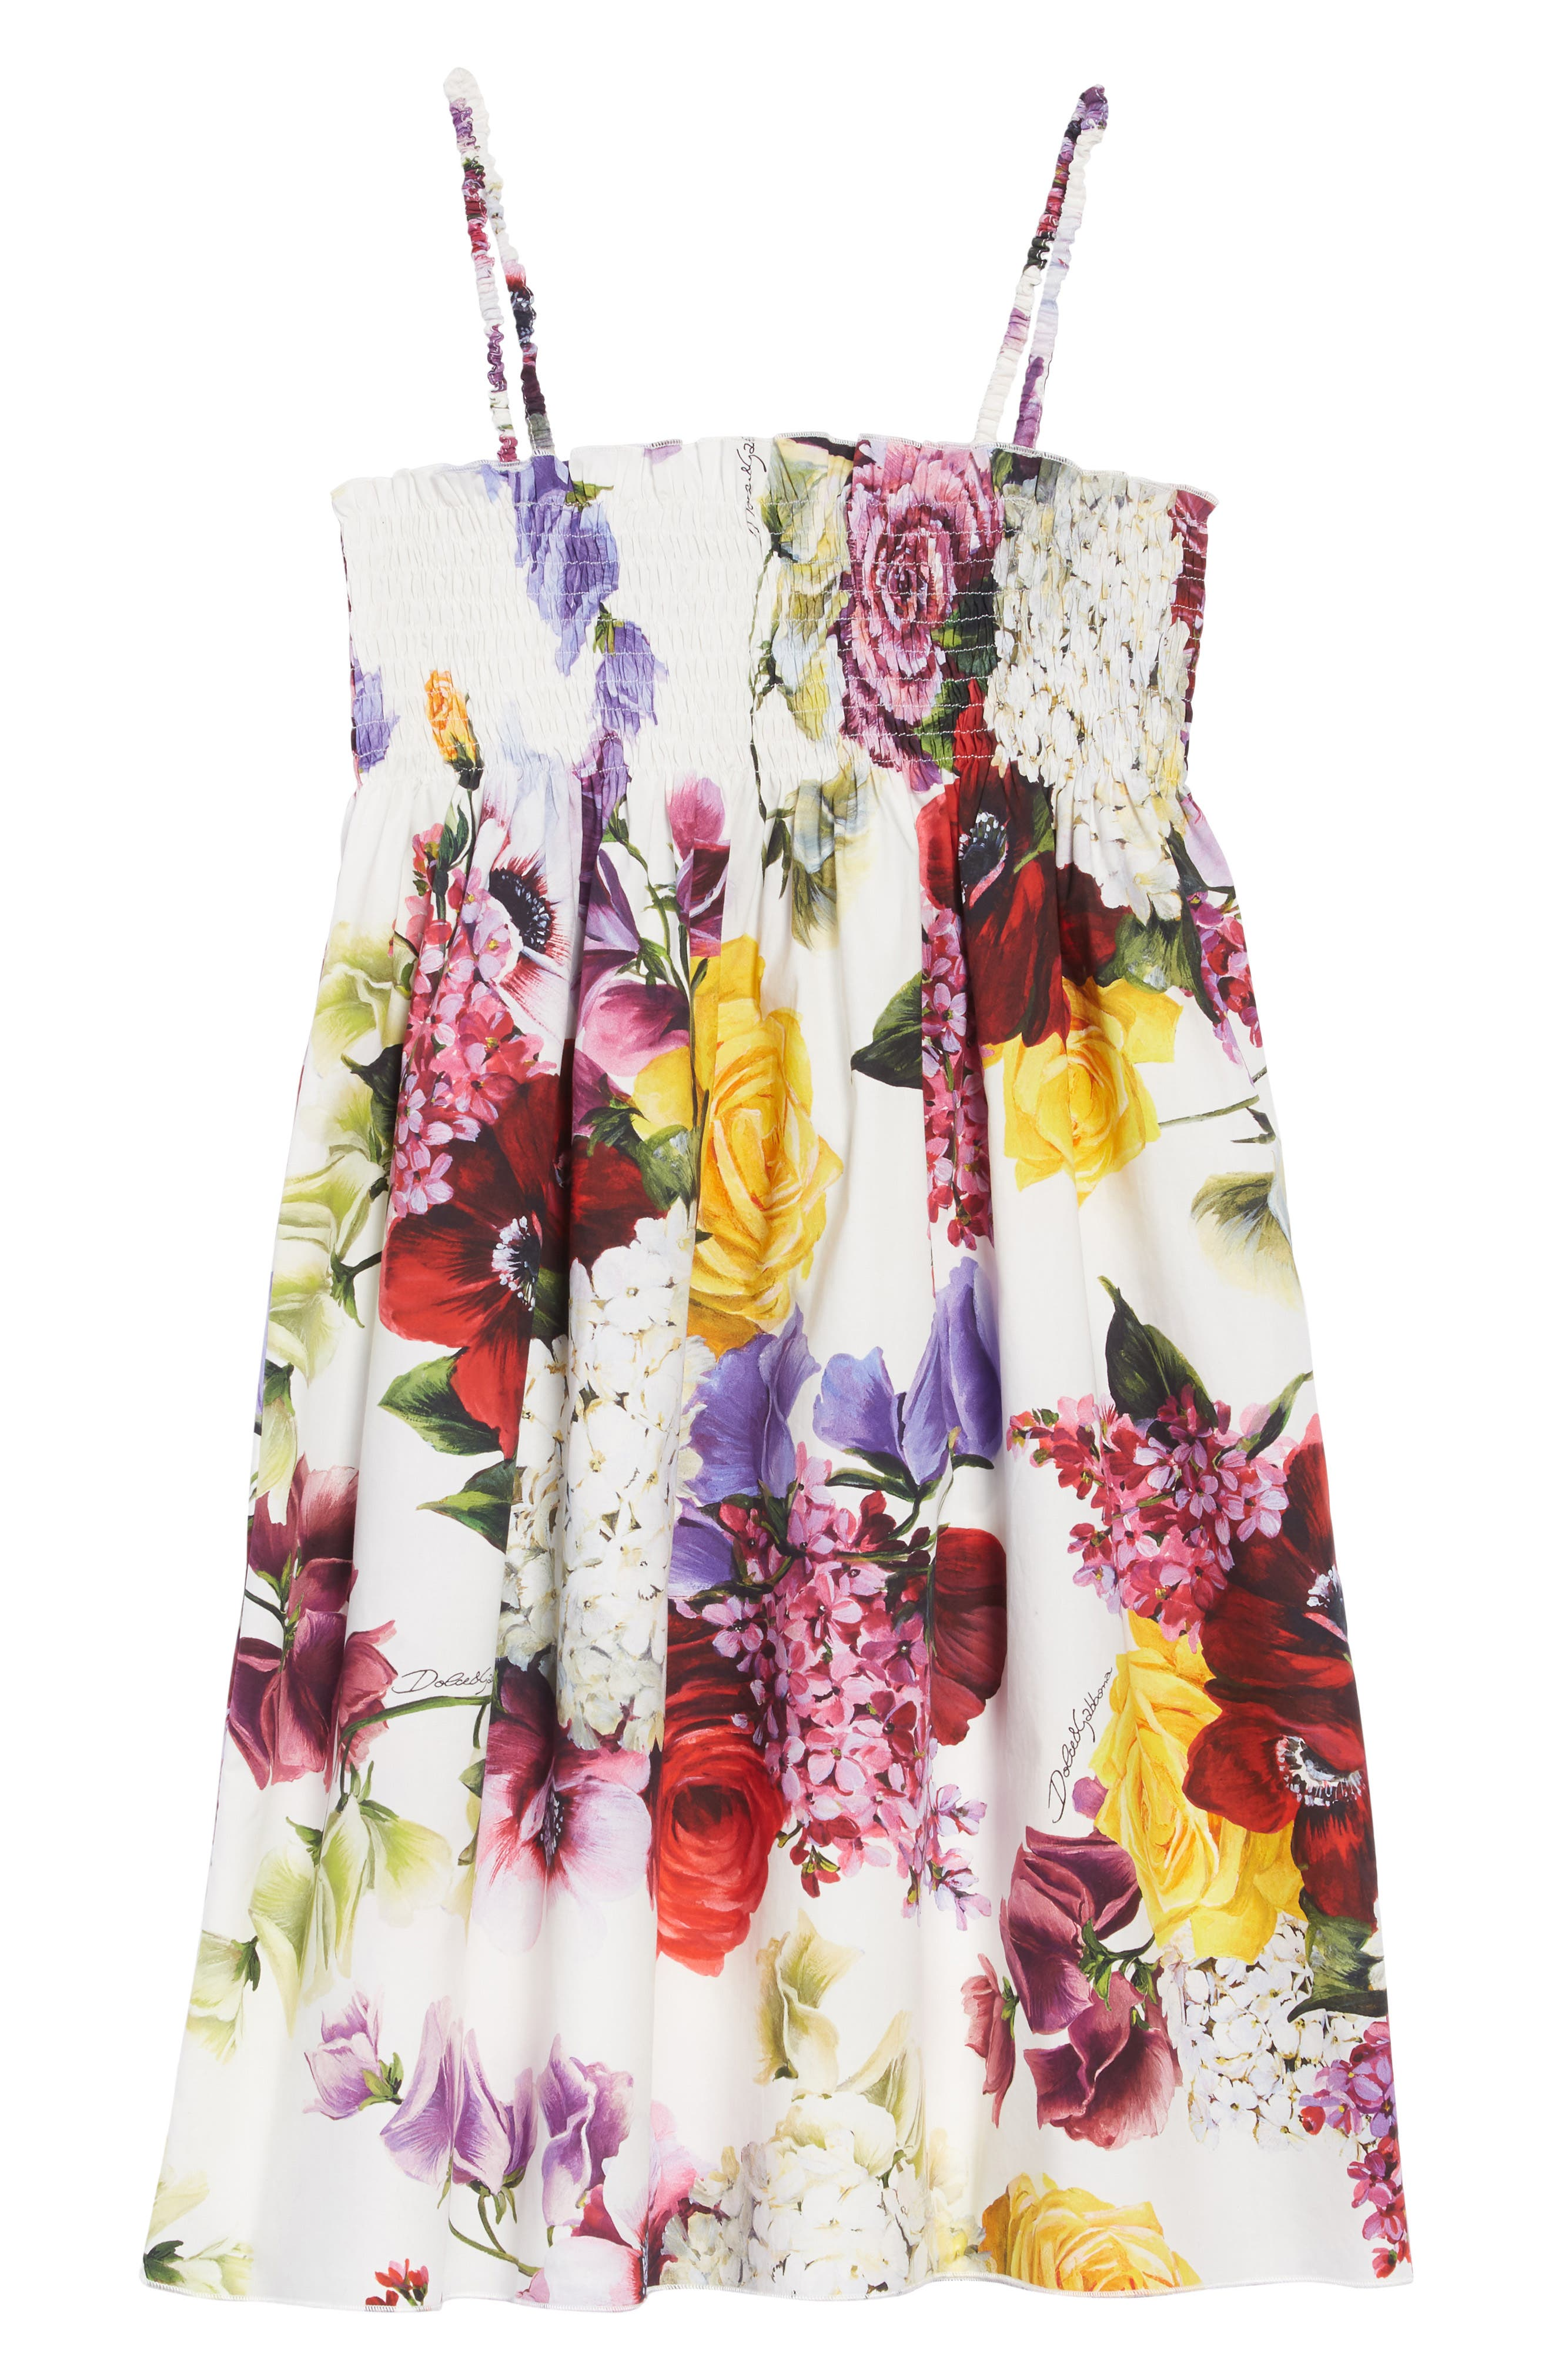 DOLCE&GABBANA, Abito Senza Maniche Dress, Main thumbnail 1, color, ORTENSIE/ FIORI F.NAT